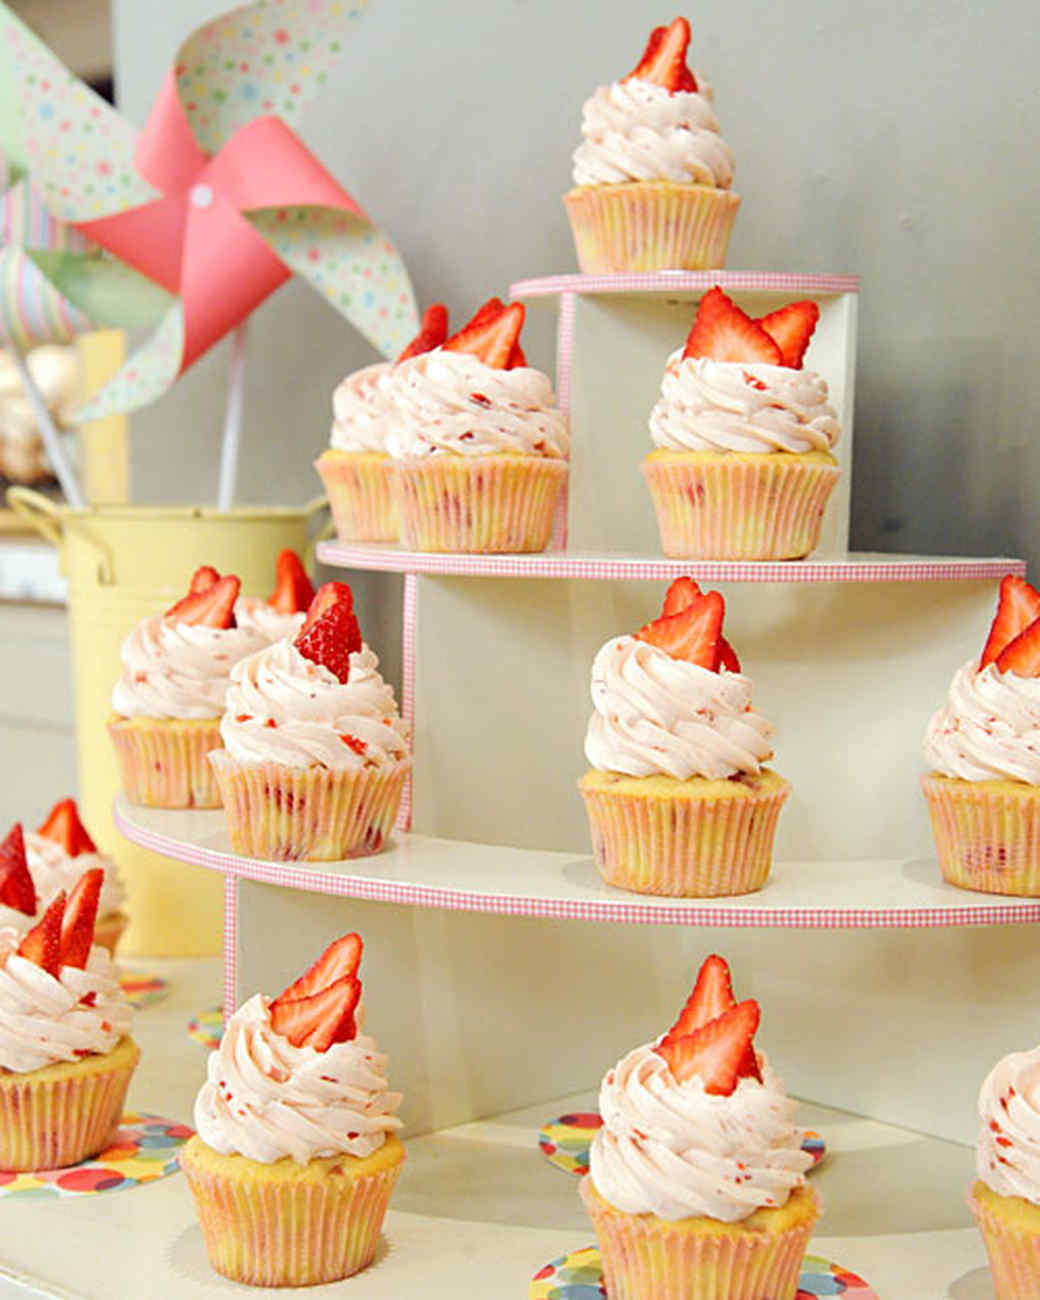 Wedding Cupcake Stand Ideas: Cupcake Stand & Video